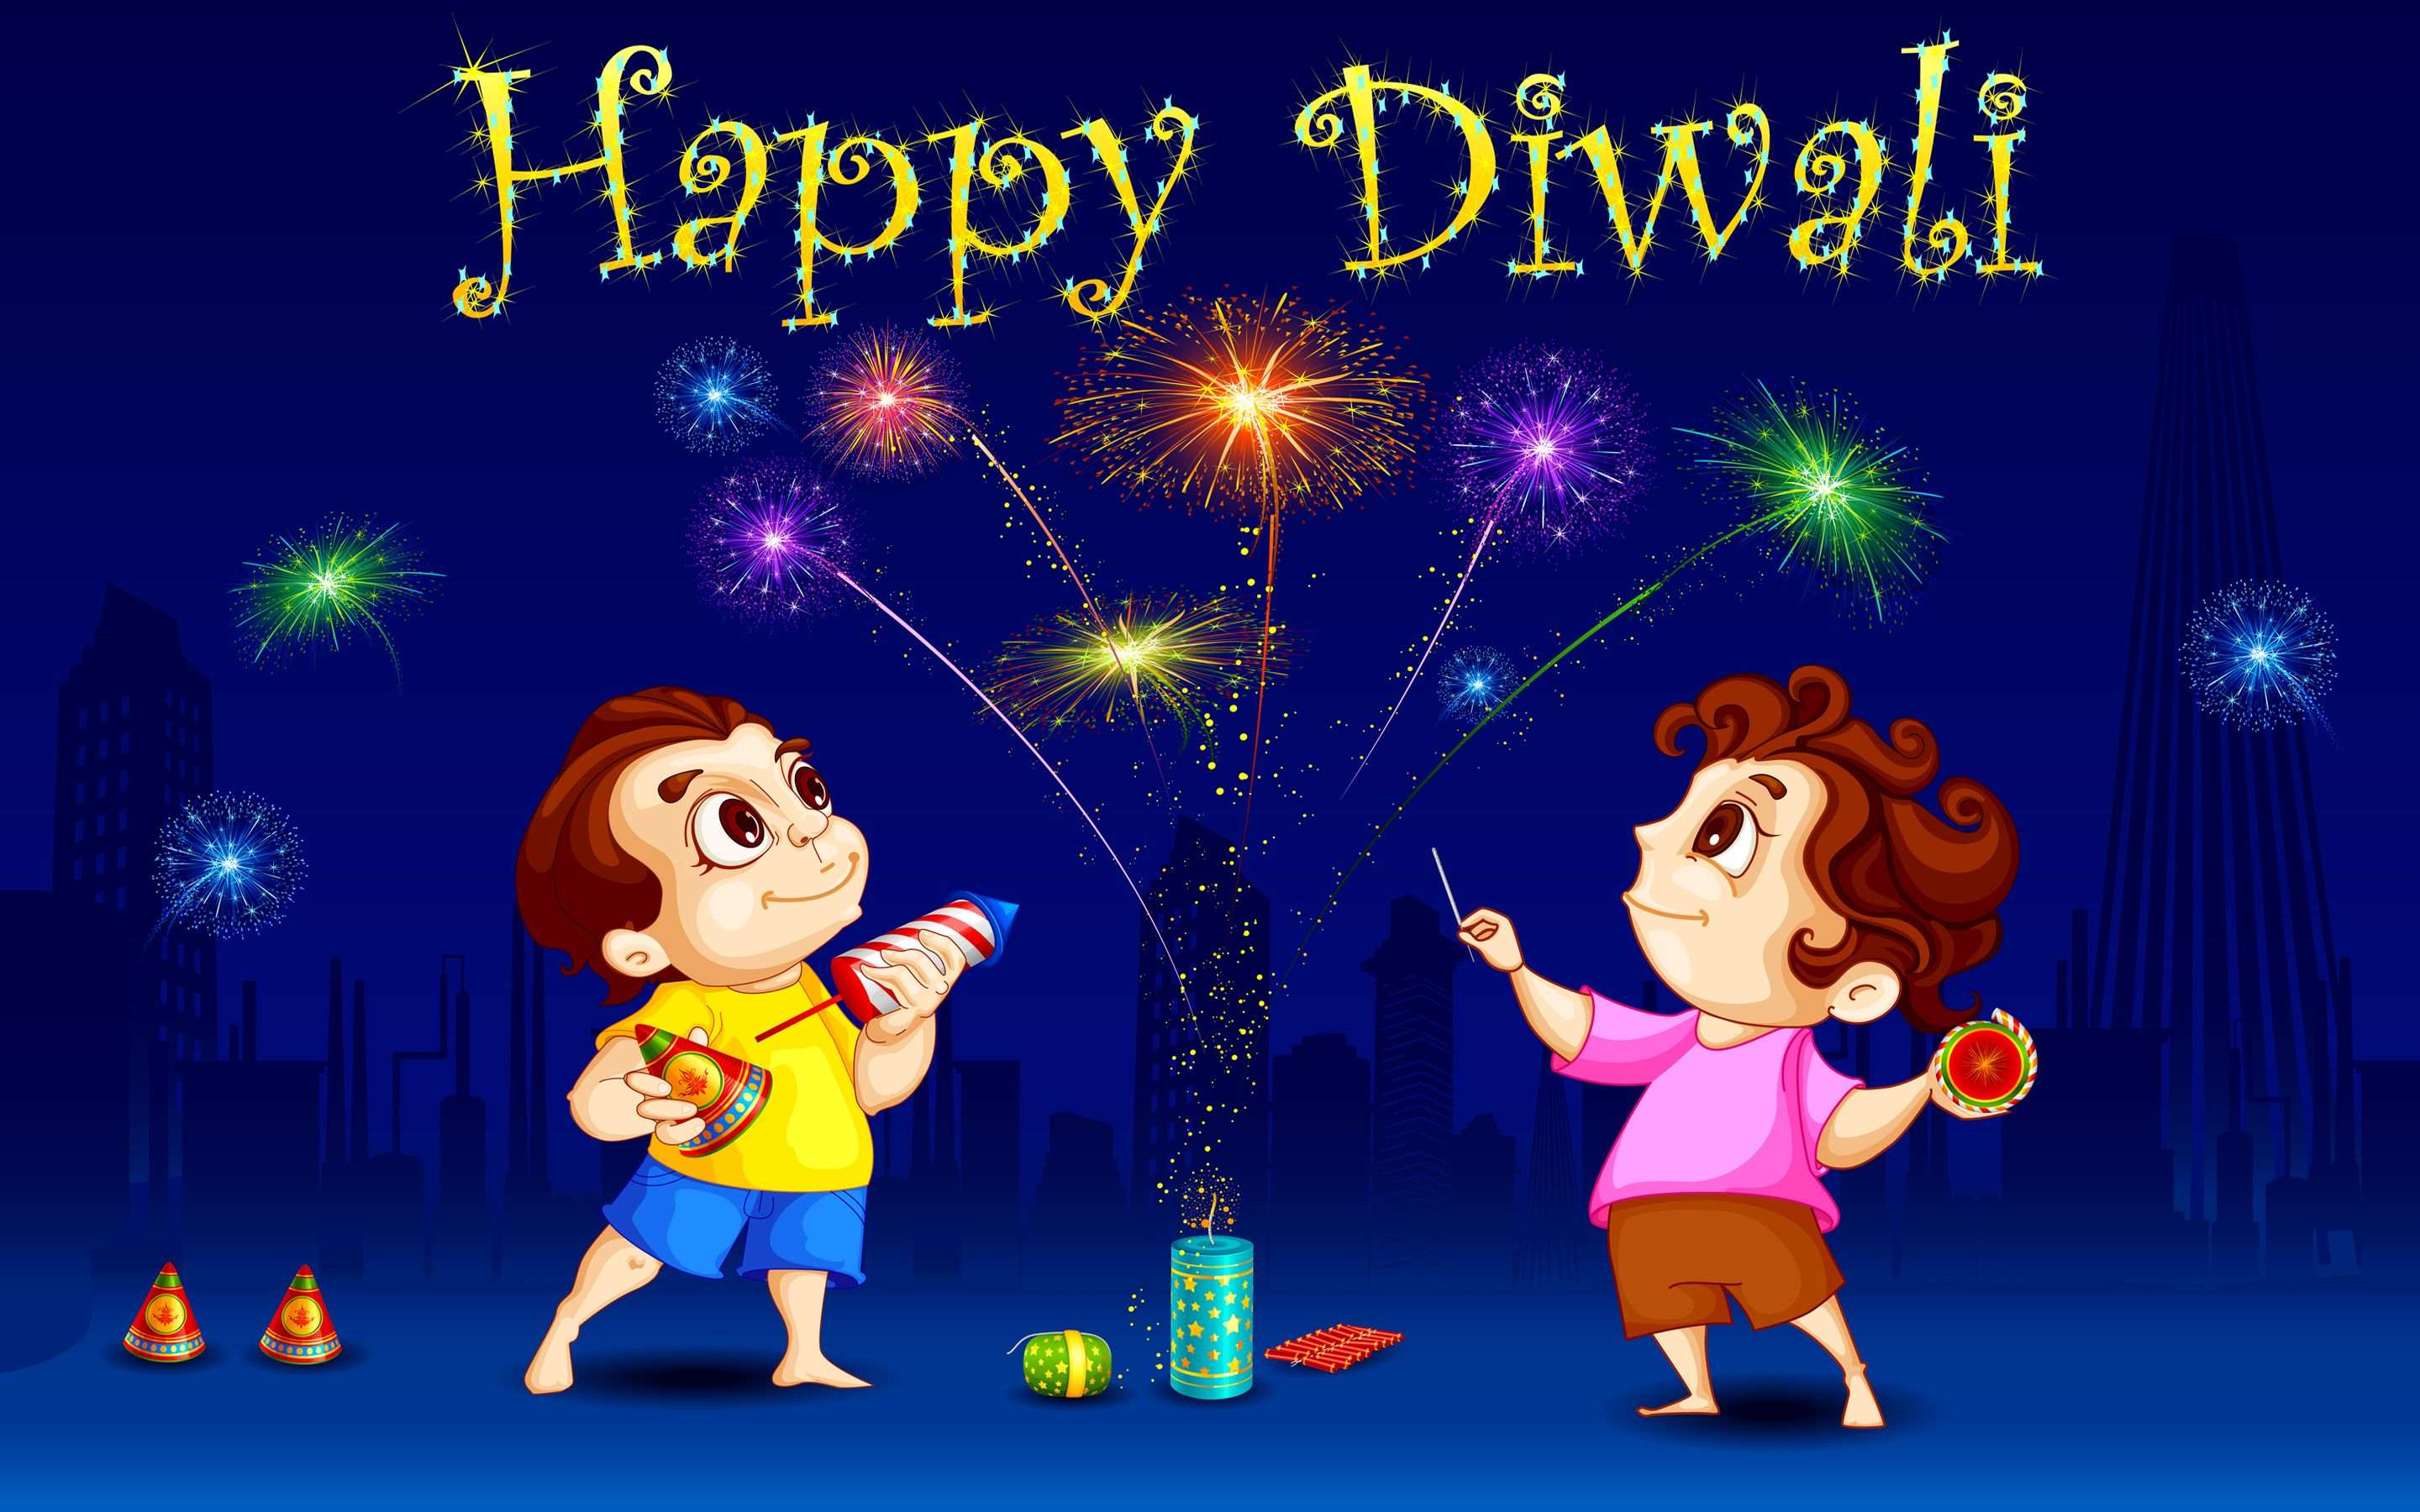 Happy Diwali Children Playing With Crackers Happy Diwali Hd